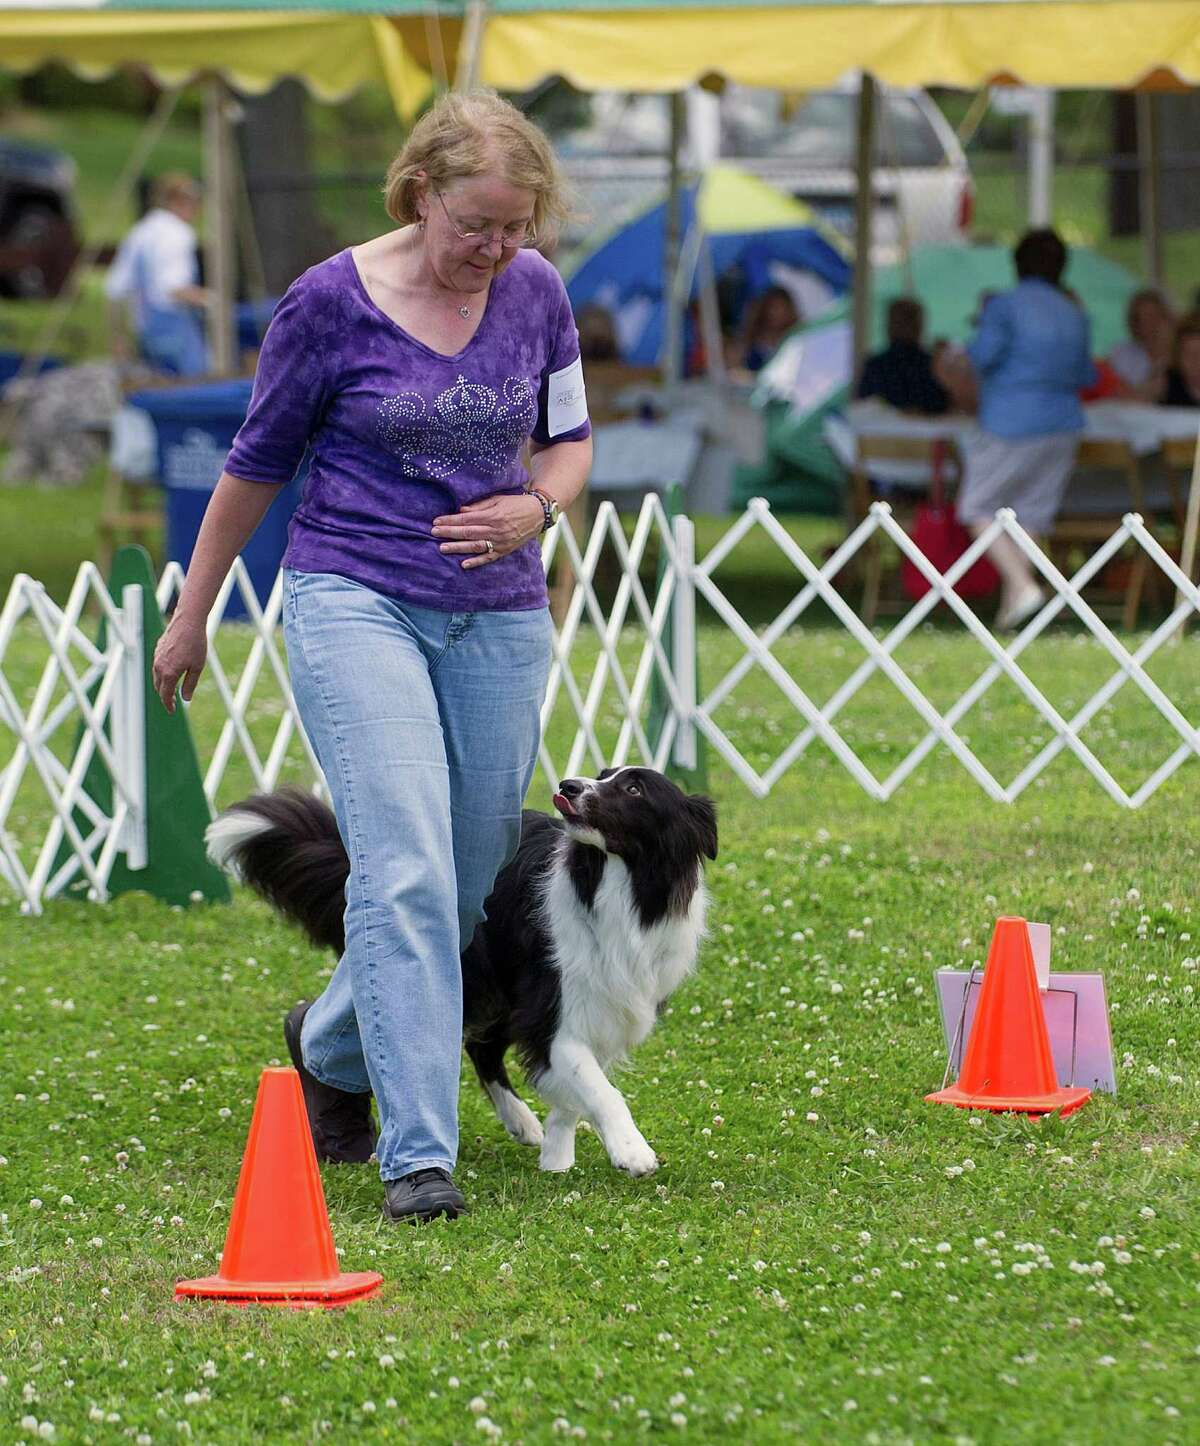 Sue Deilus of Newtown leads her border collie, Shamus, during the Rally Excellent obedience competition during the Greenwich Kennel Club's All-Breed Dog Show at Calf Pasture Beach in Norwalk, Conn., on Saturday, June 7, 2014. Deilus and Shamus earned a perfect score.